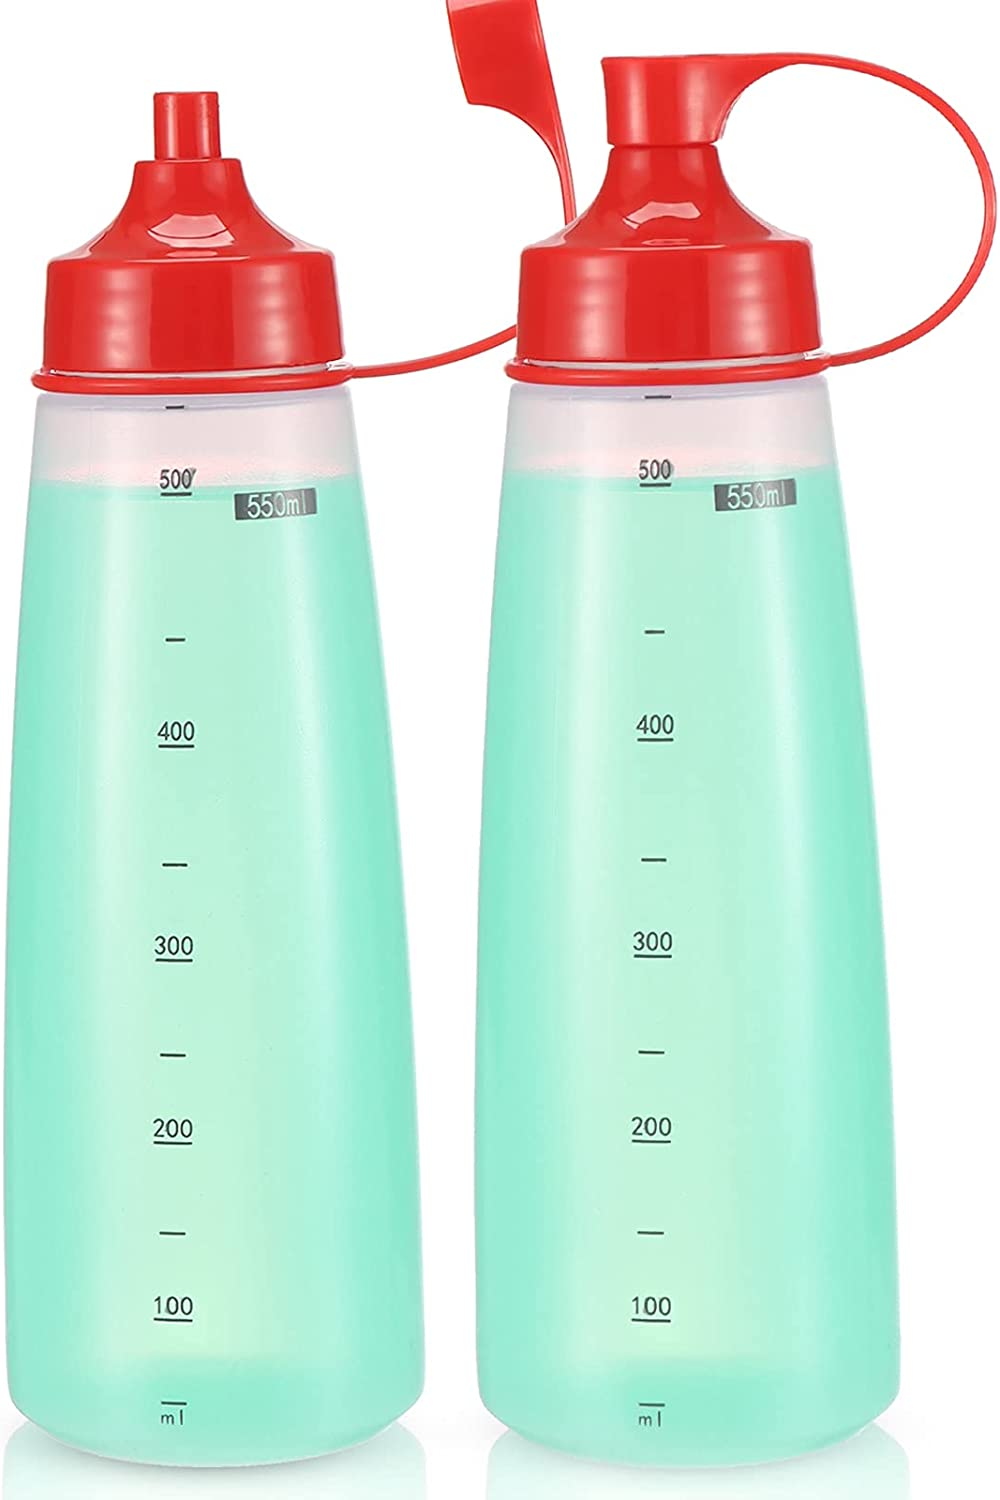 oiununo Squeeze Bottles Wide Mouth - of 2 Bottle Max 86% OFF Condiment Pack San Francisco Mall